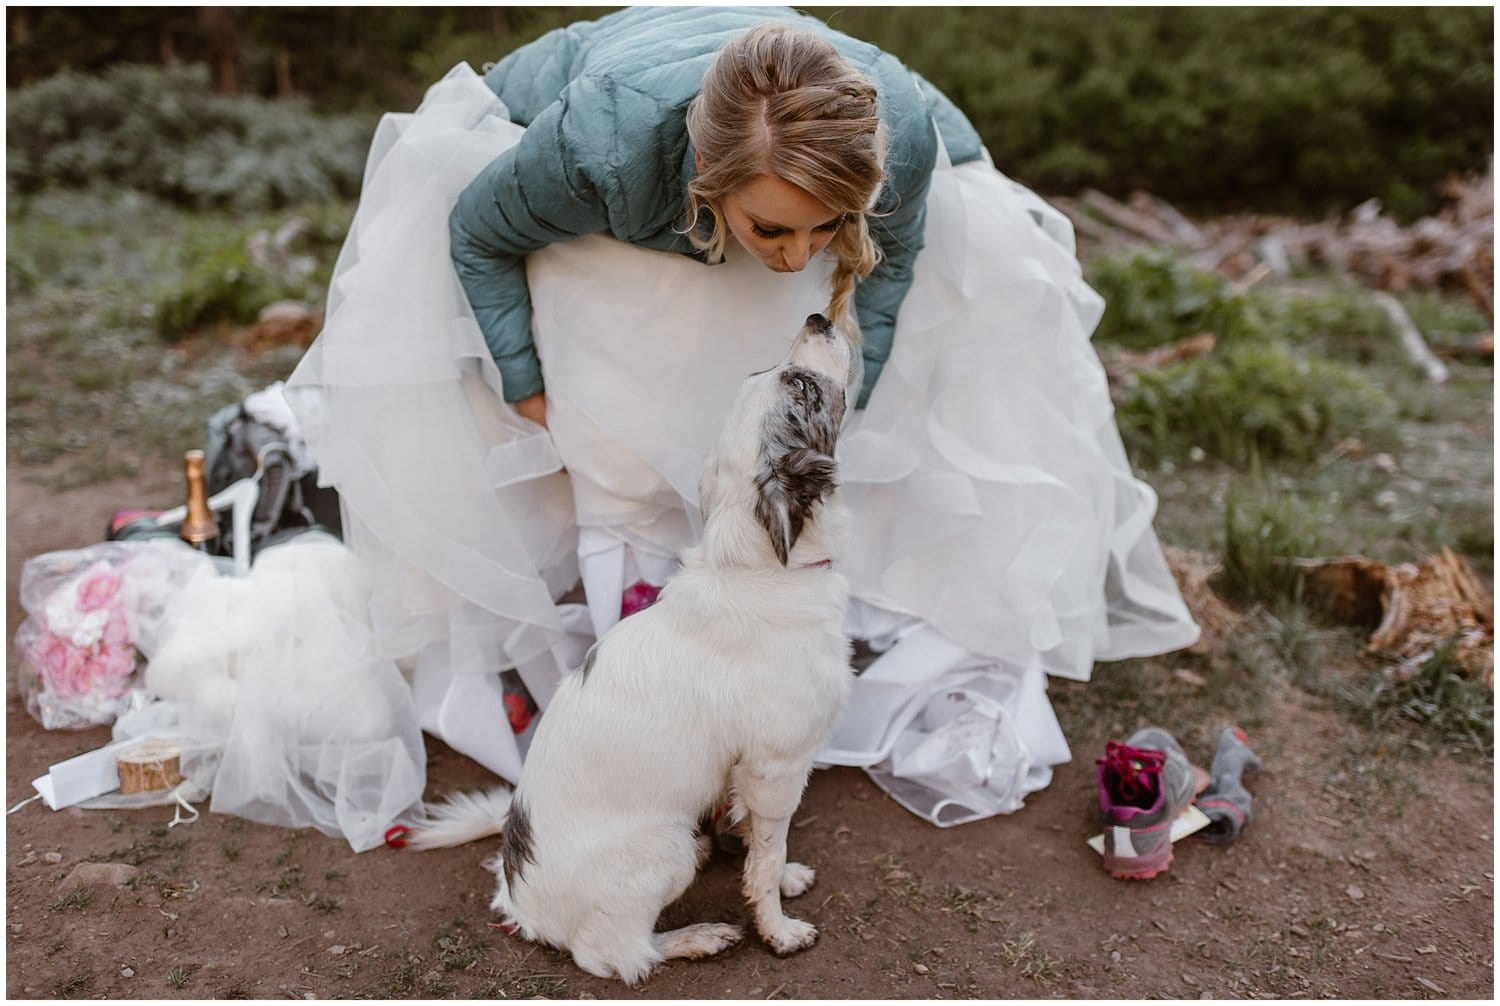 A bride bends down to kiss her white dog on her wedding day.